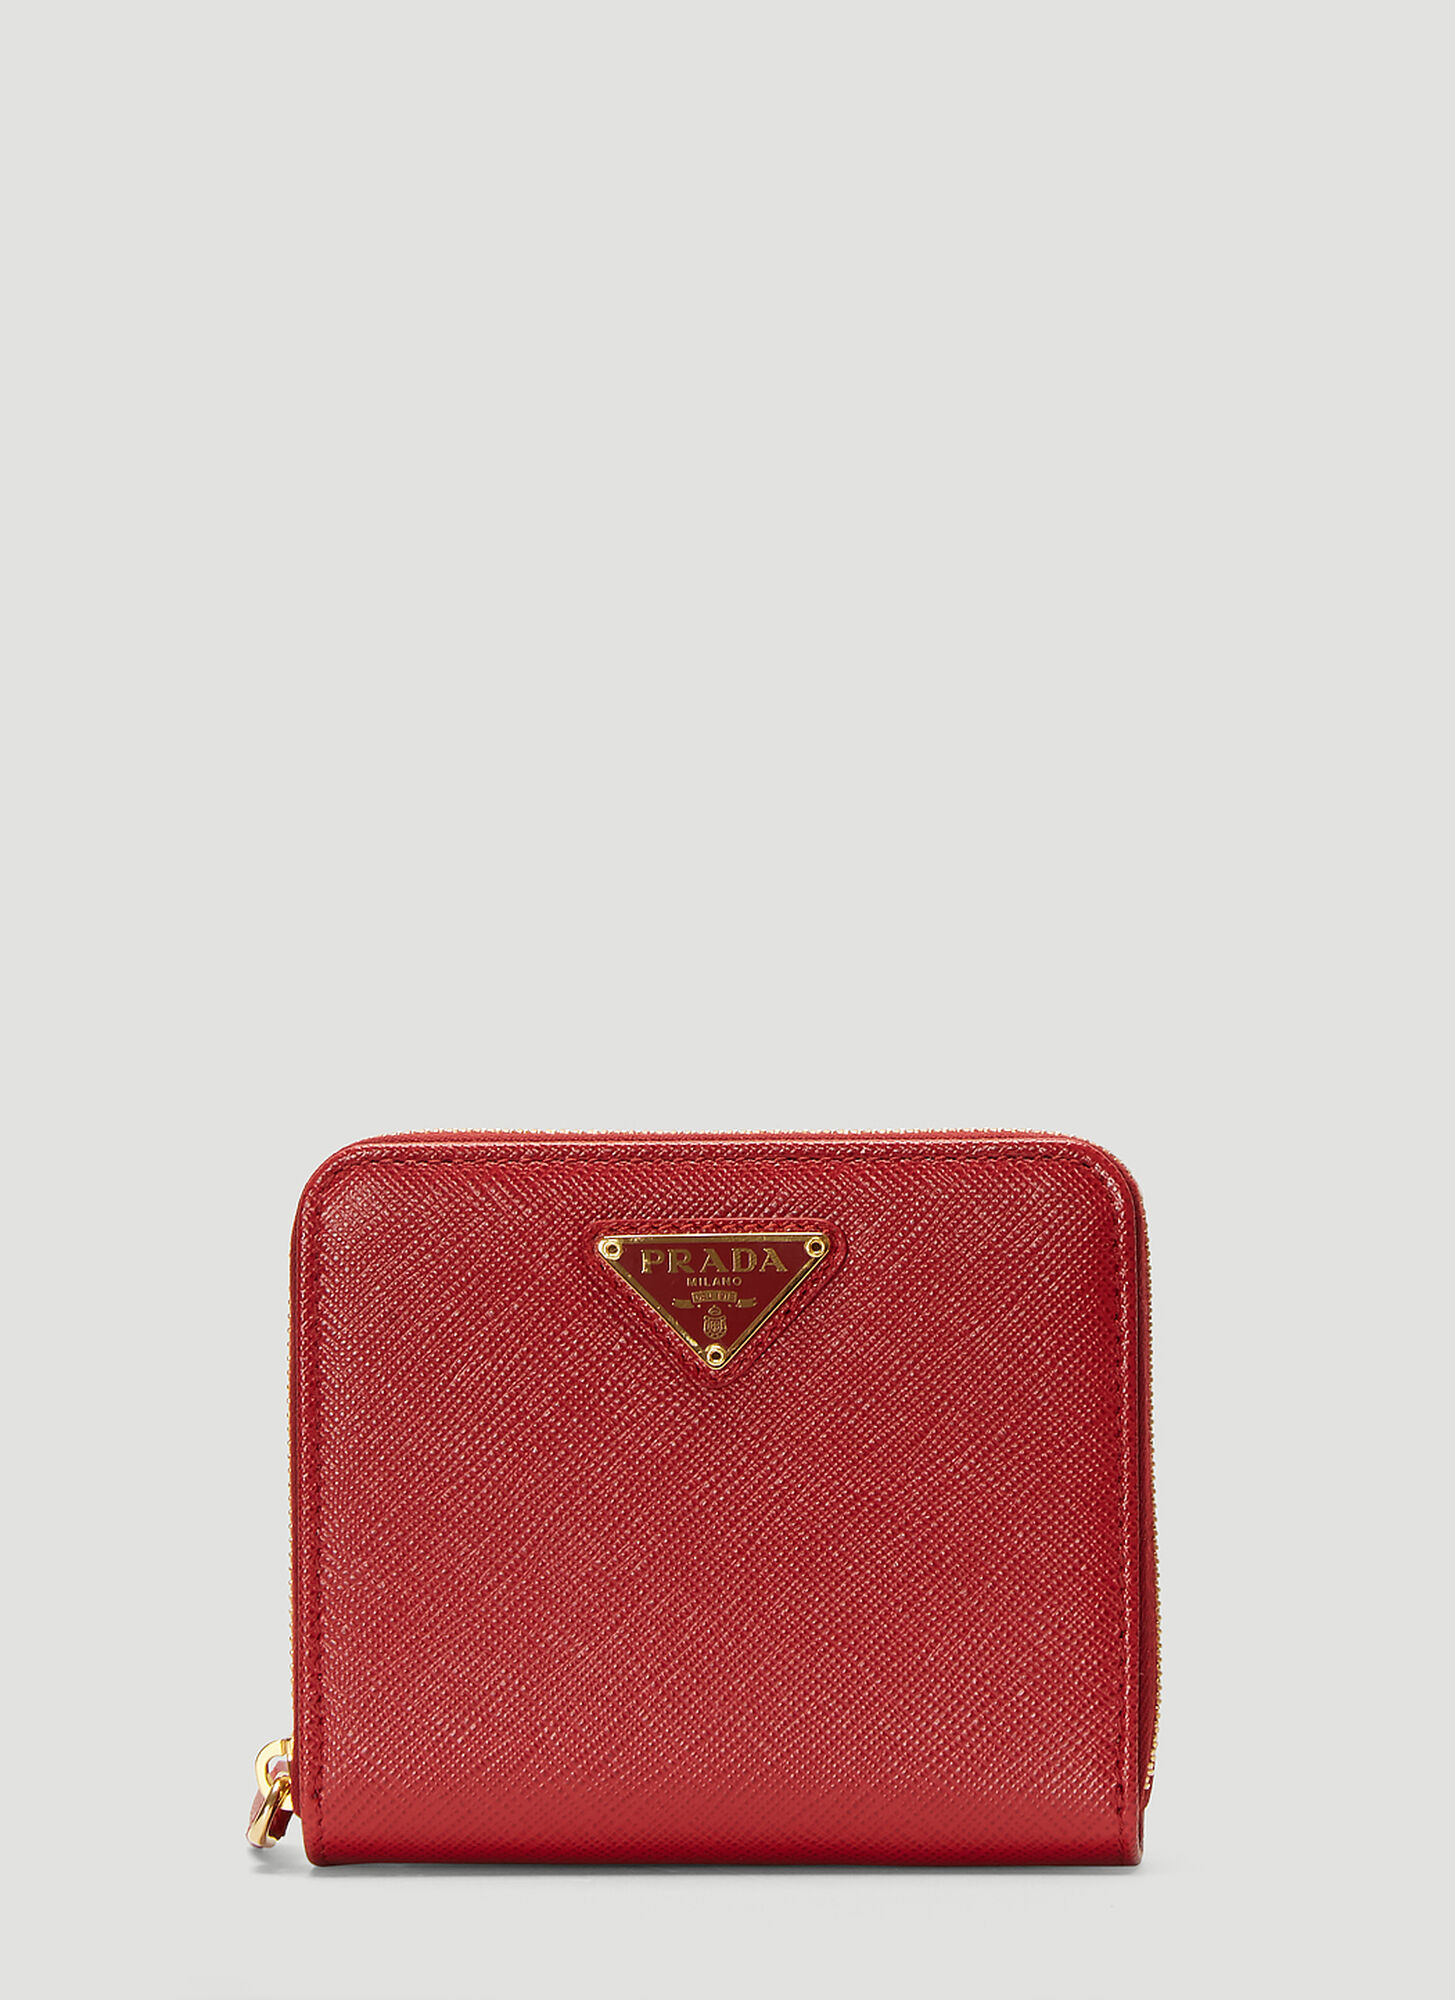 Prada Small Zip-Up Wallet in Red